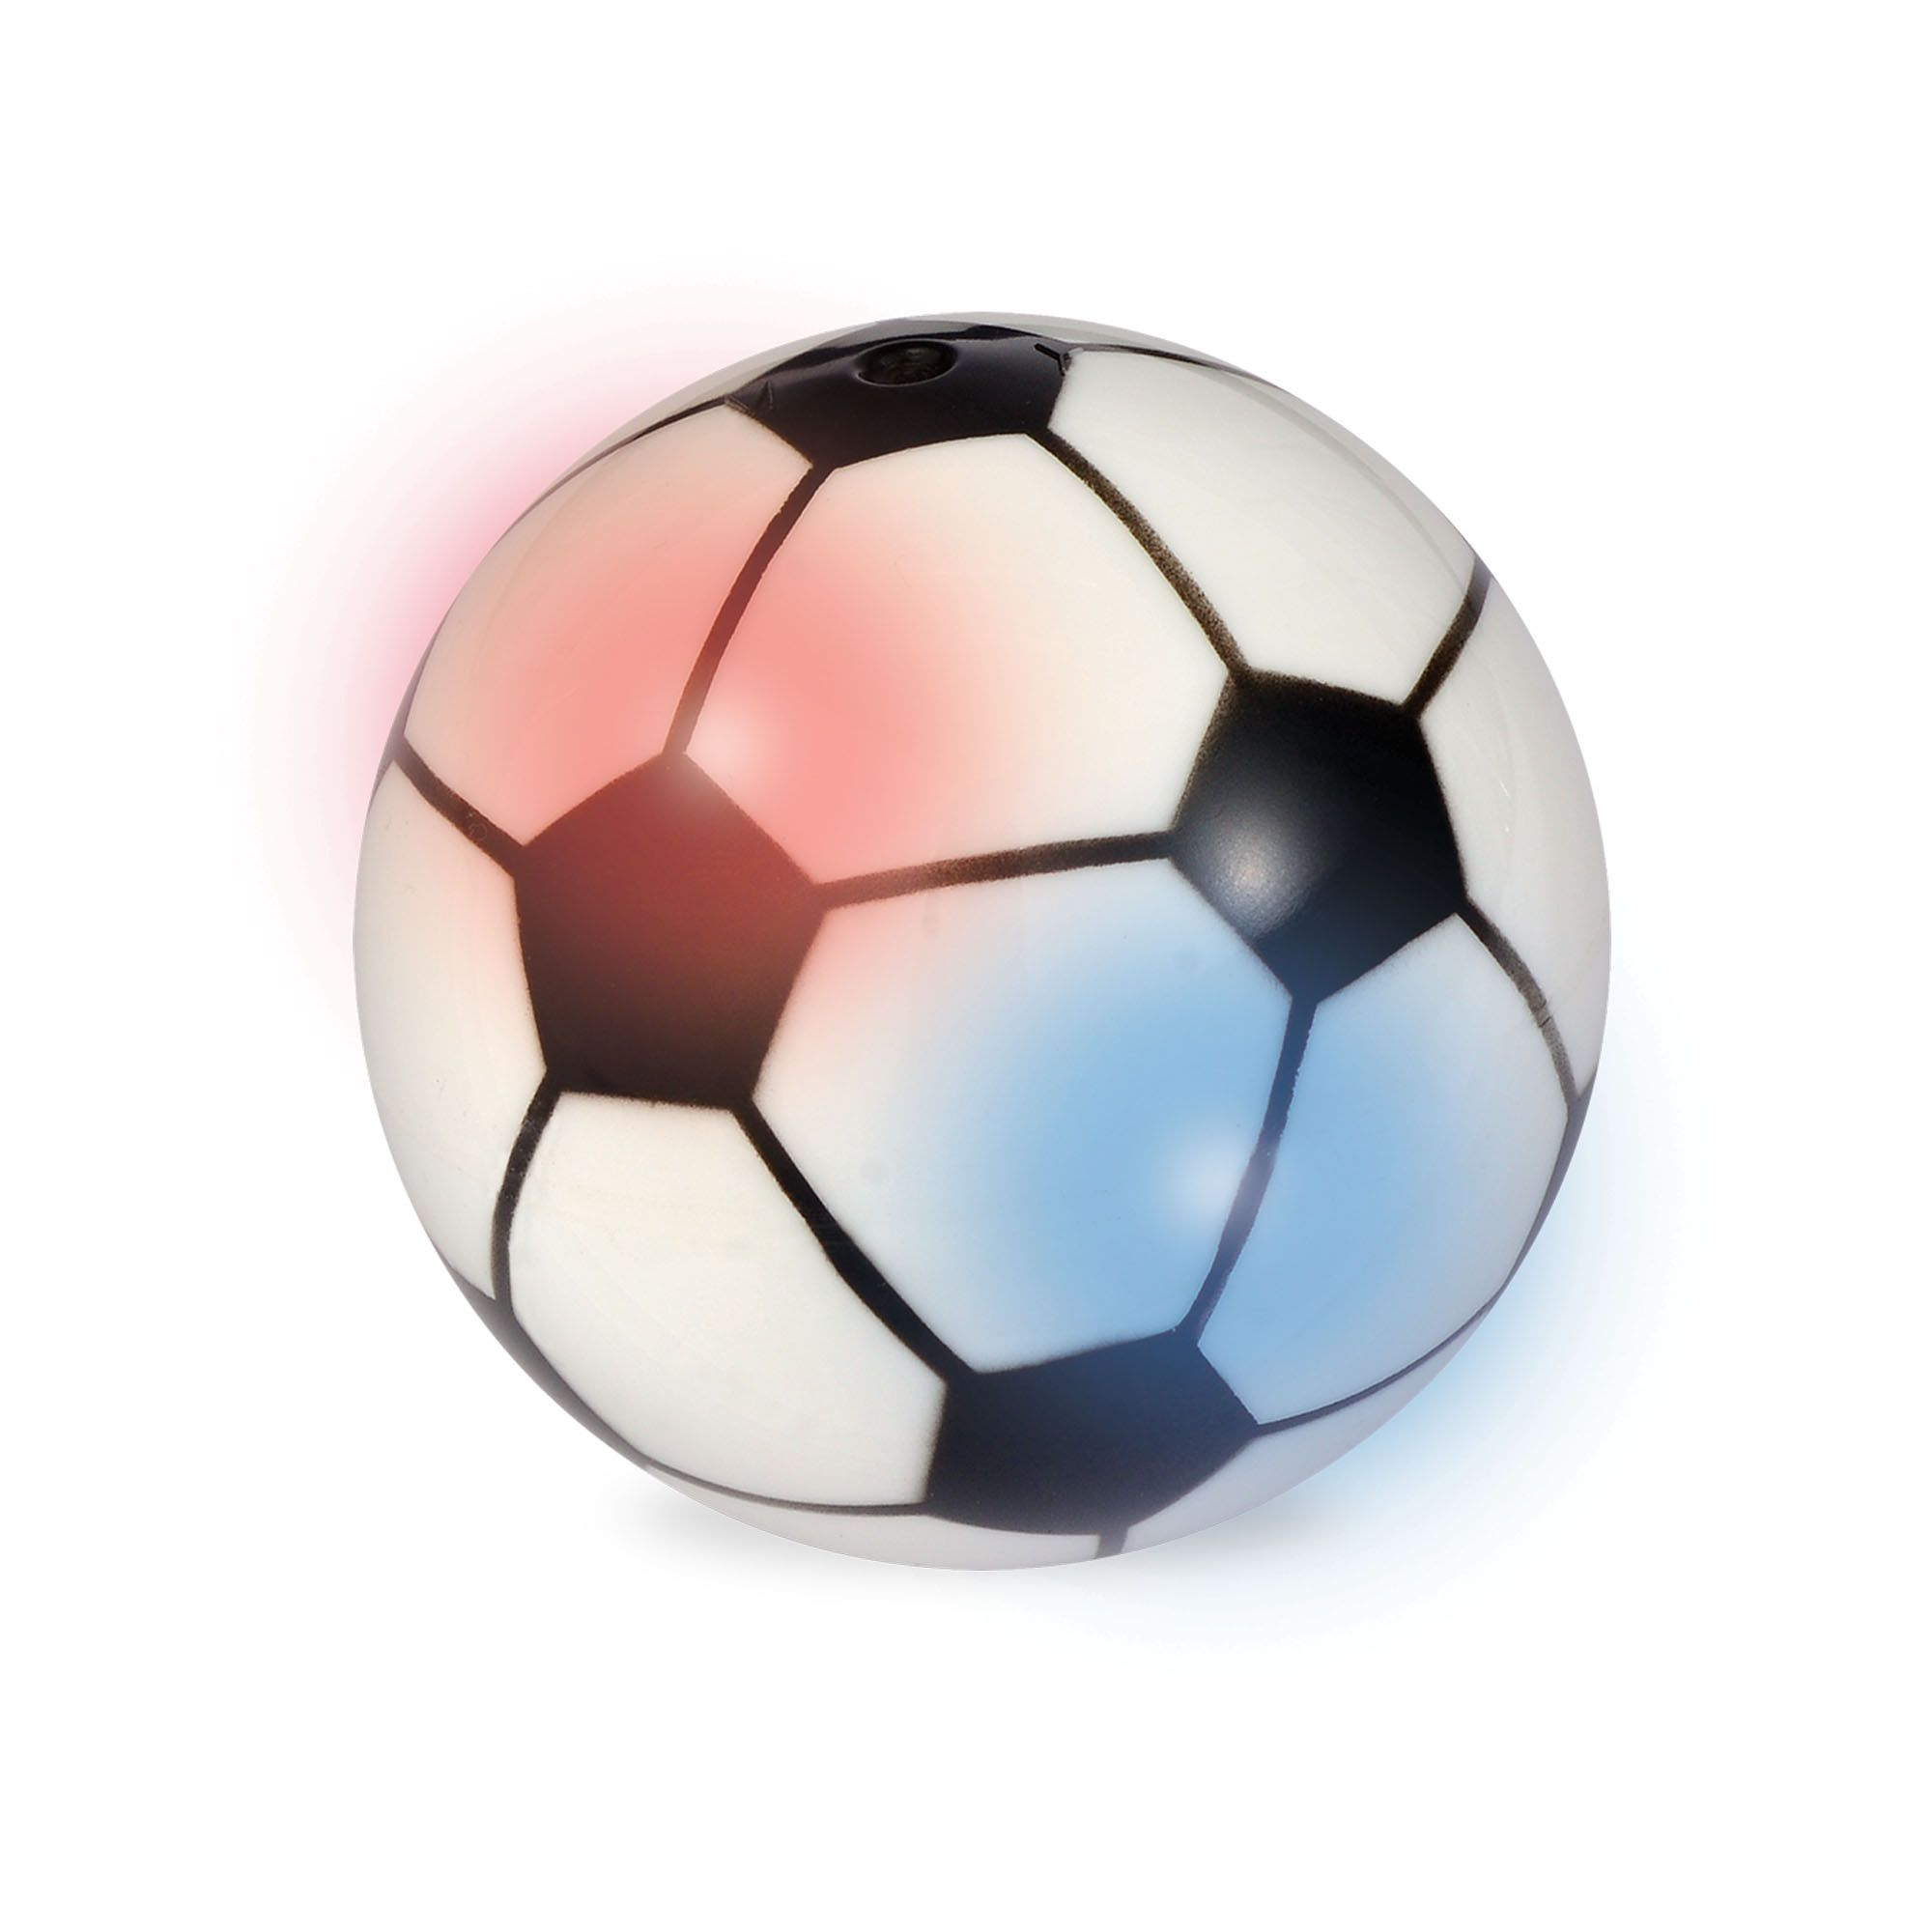 Goal Getter Light Up Soccer Ball Favor